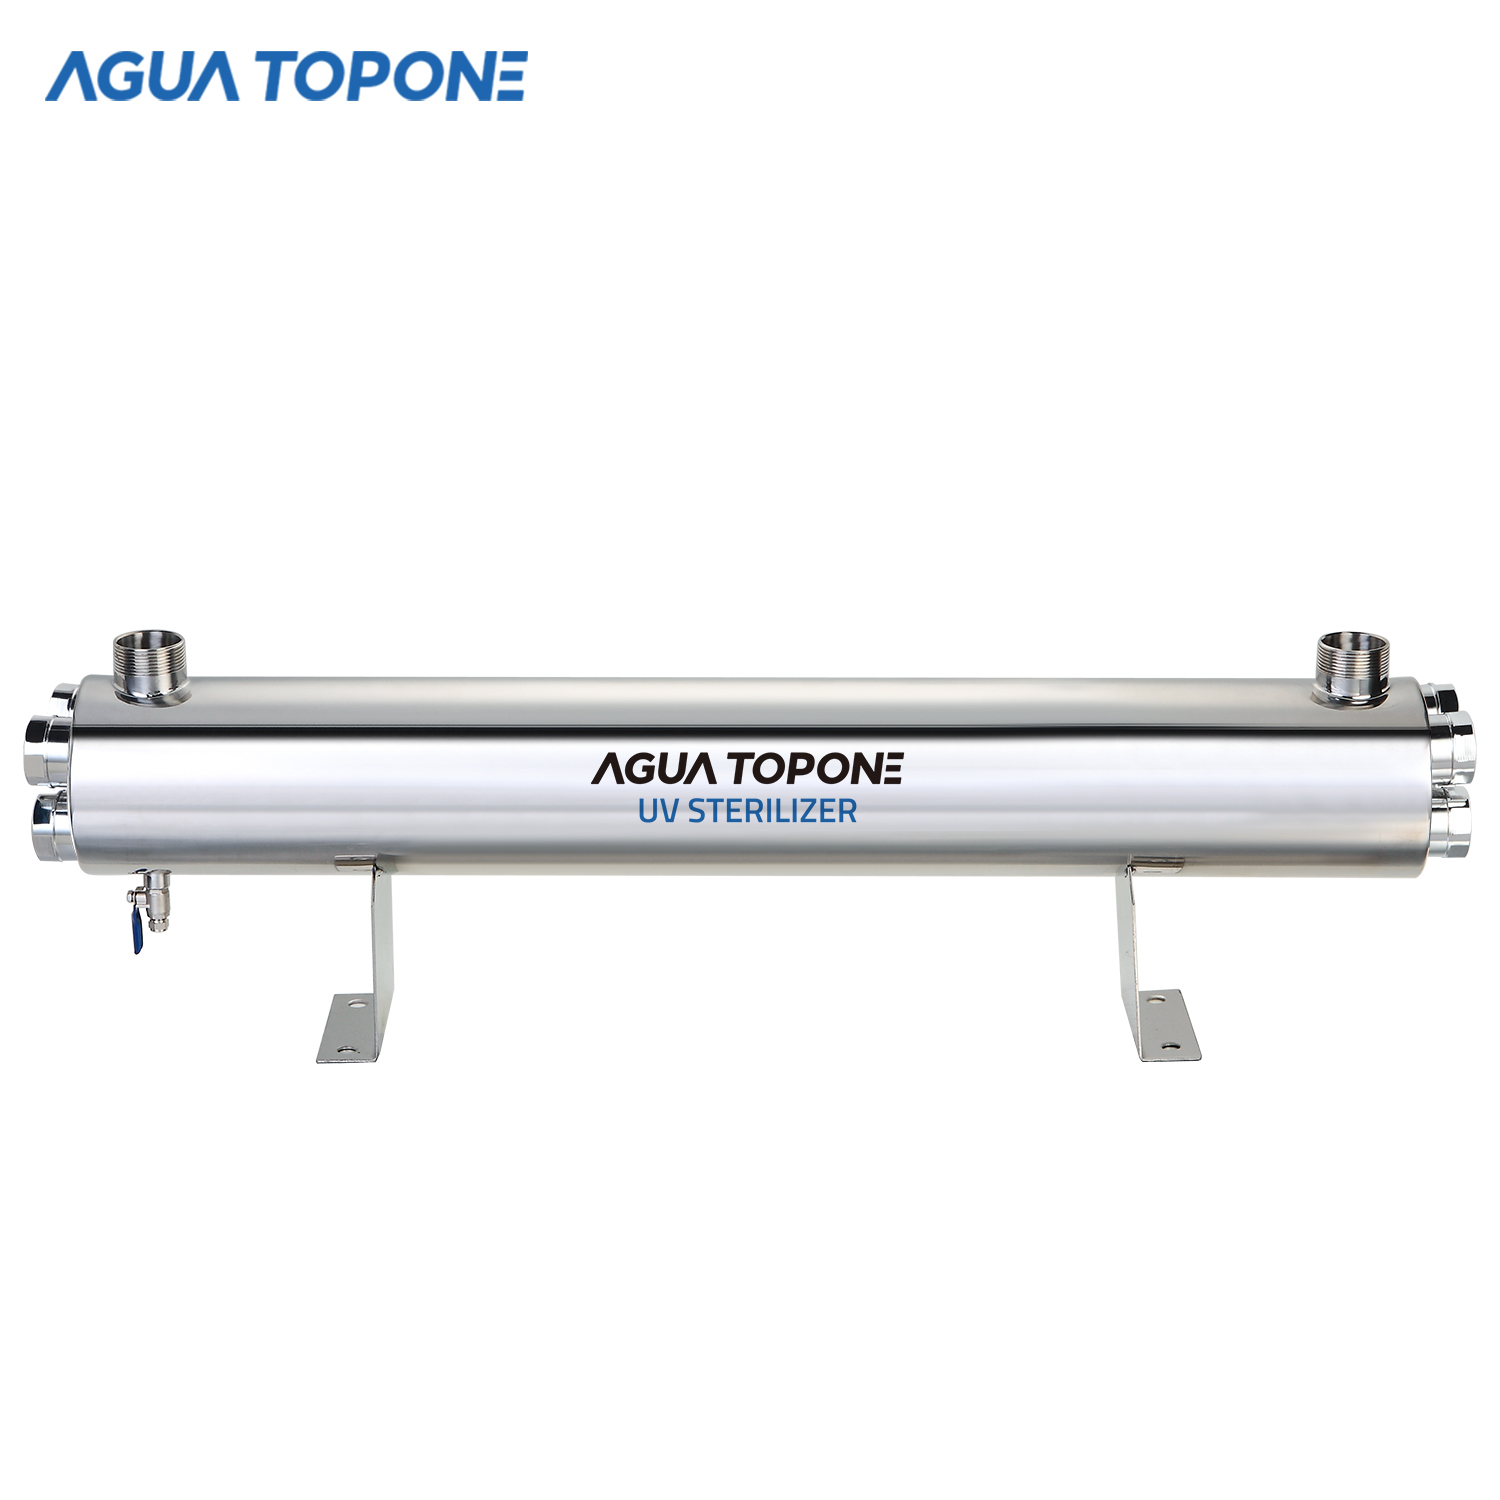 Agua Topone 220w 48GPM uv disinfect <strong>water</strong> <strong>treatment</strong> for commercial